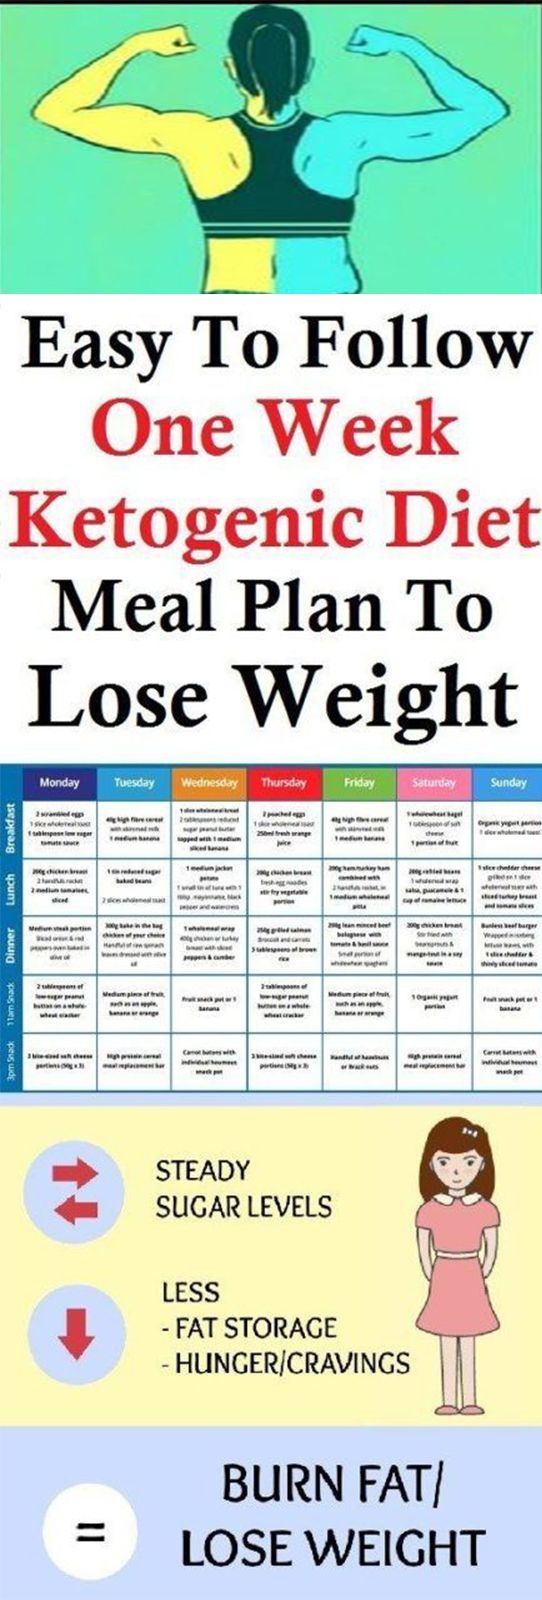 how to start a diet plan to lose weight